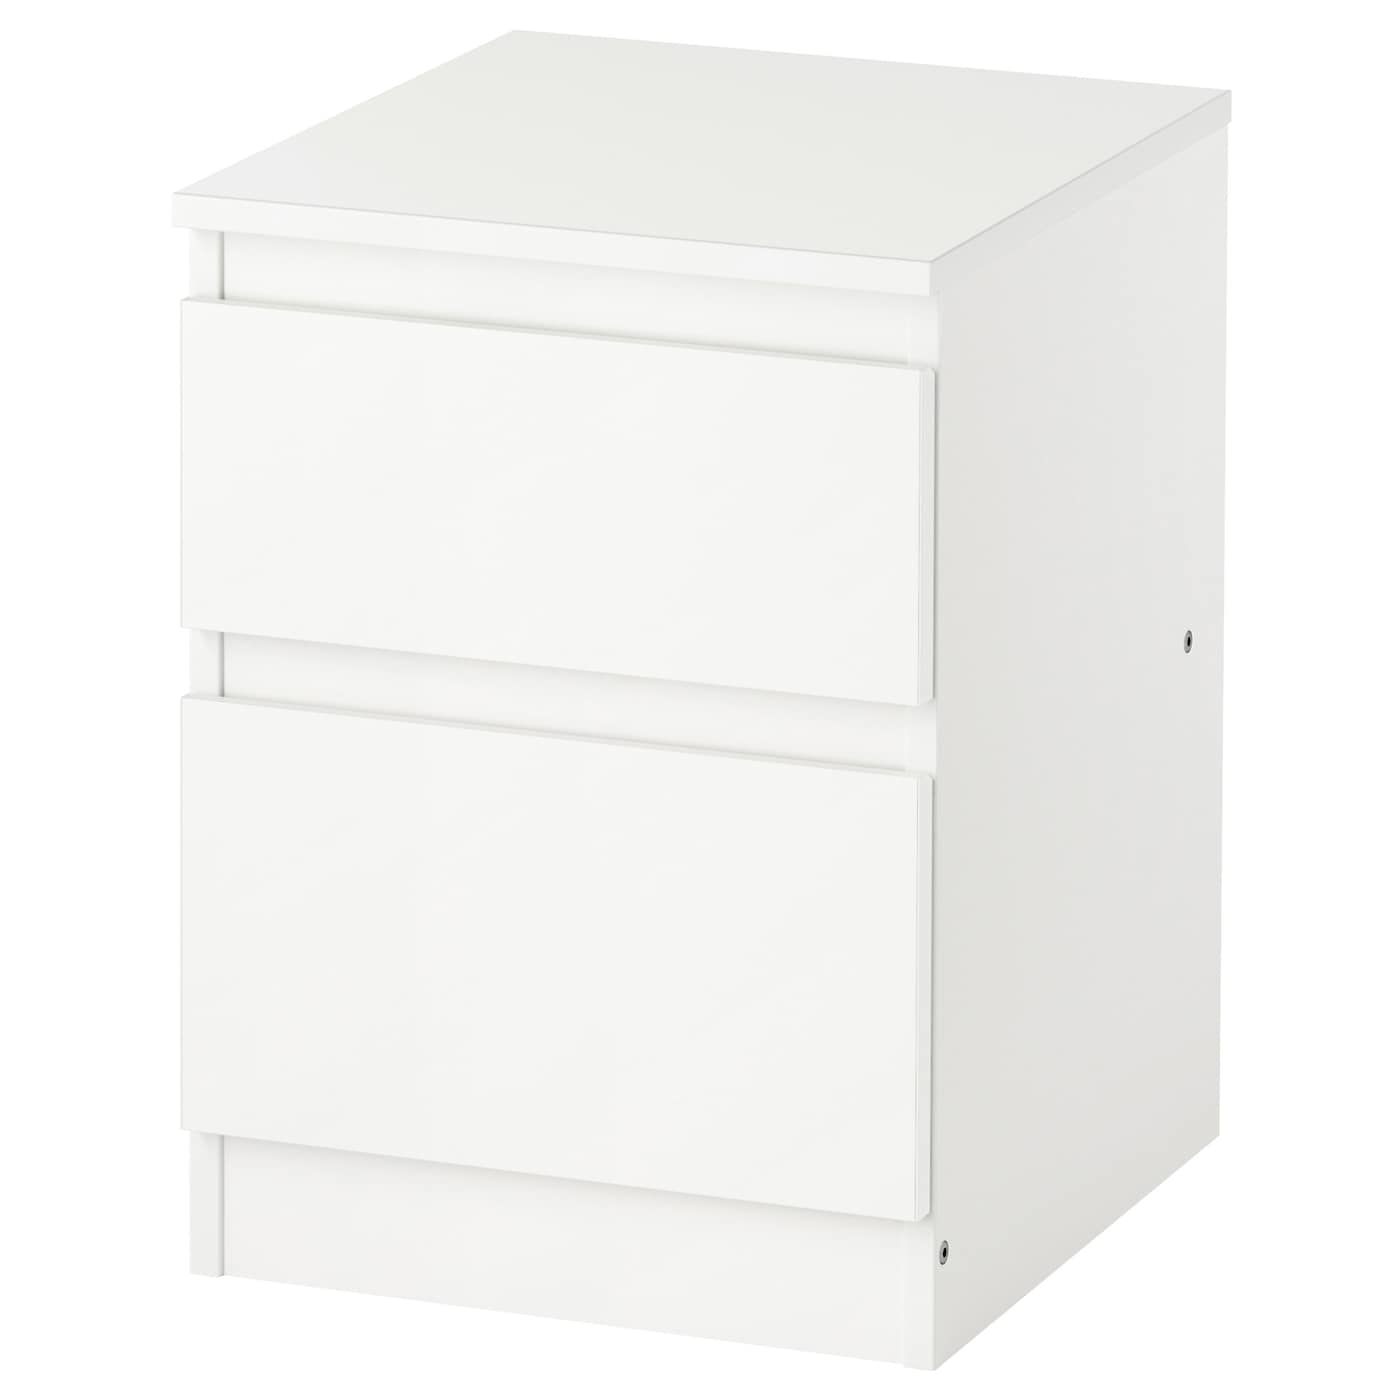 bostrak wardrobe white 80 x 50 x 180 cm ikea. Black Bedroom Furniture Sets. Home Design Ideas